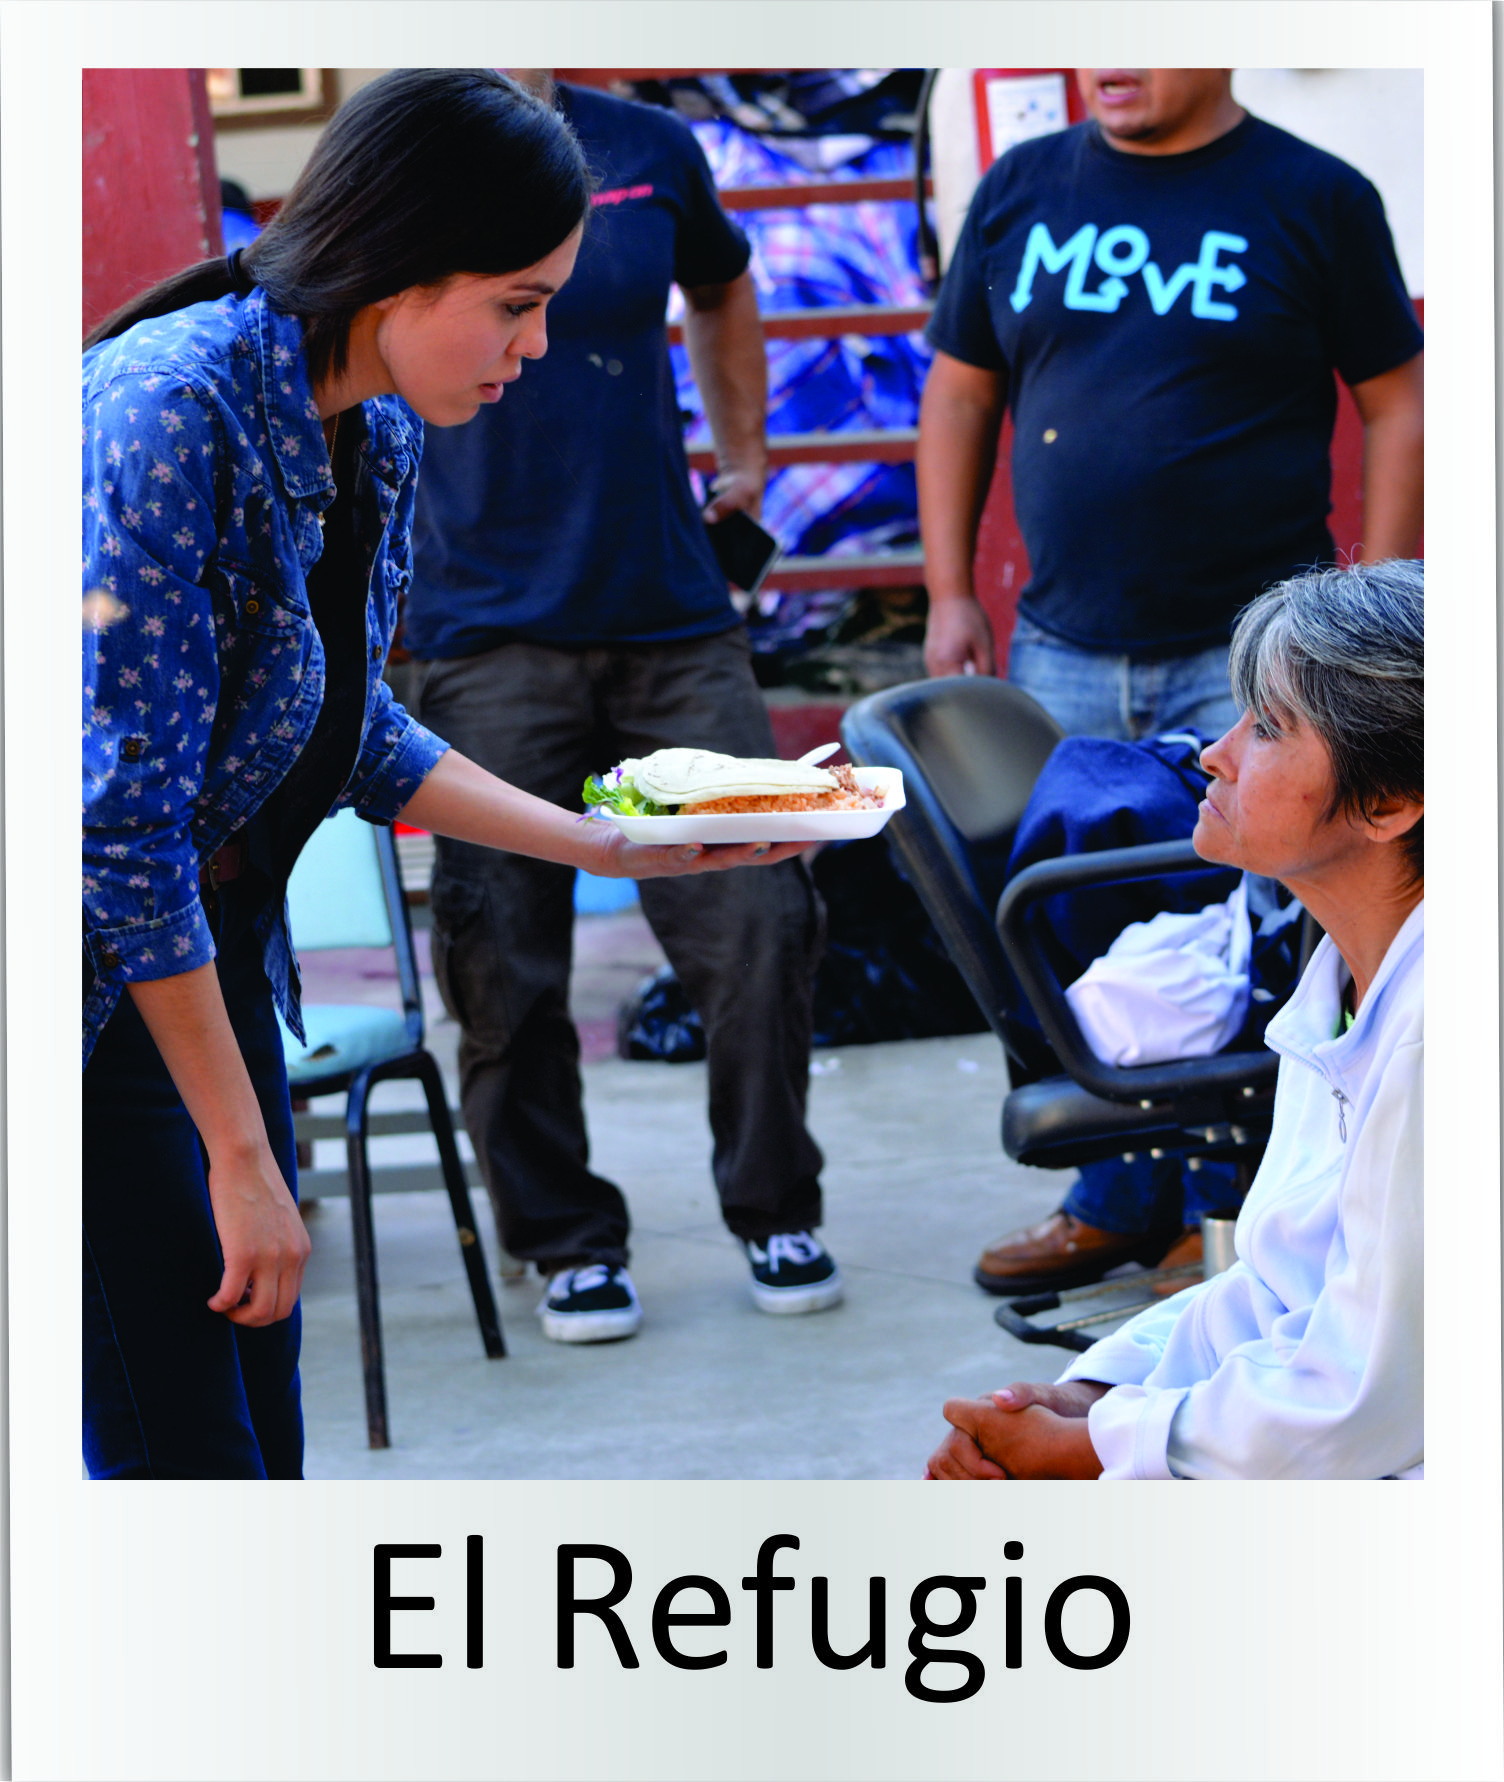 El Refugio Seniors' Care Center